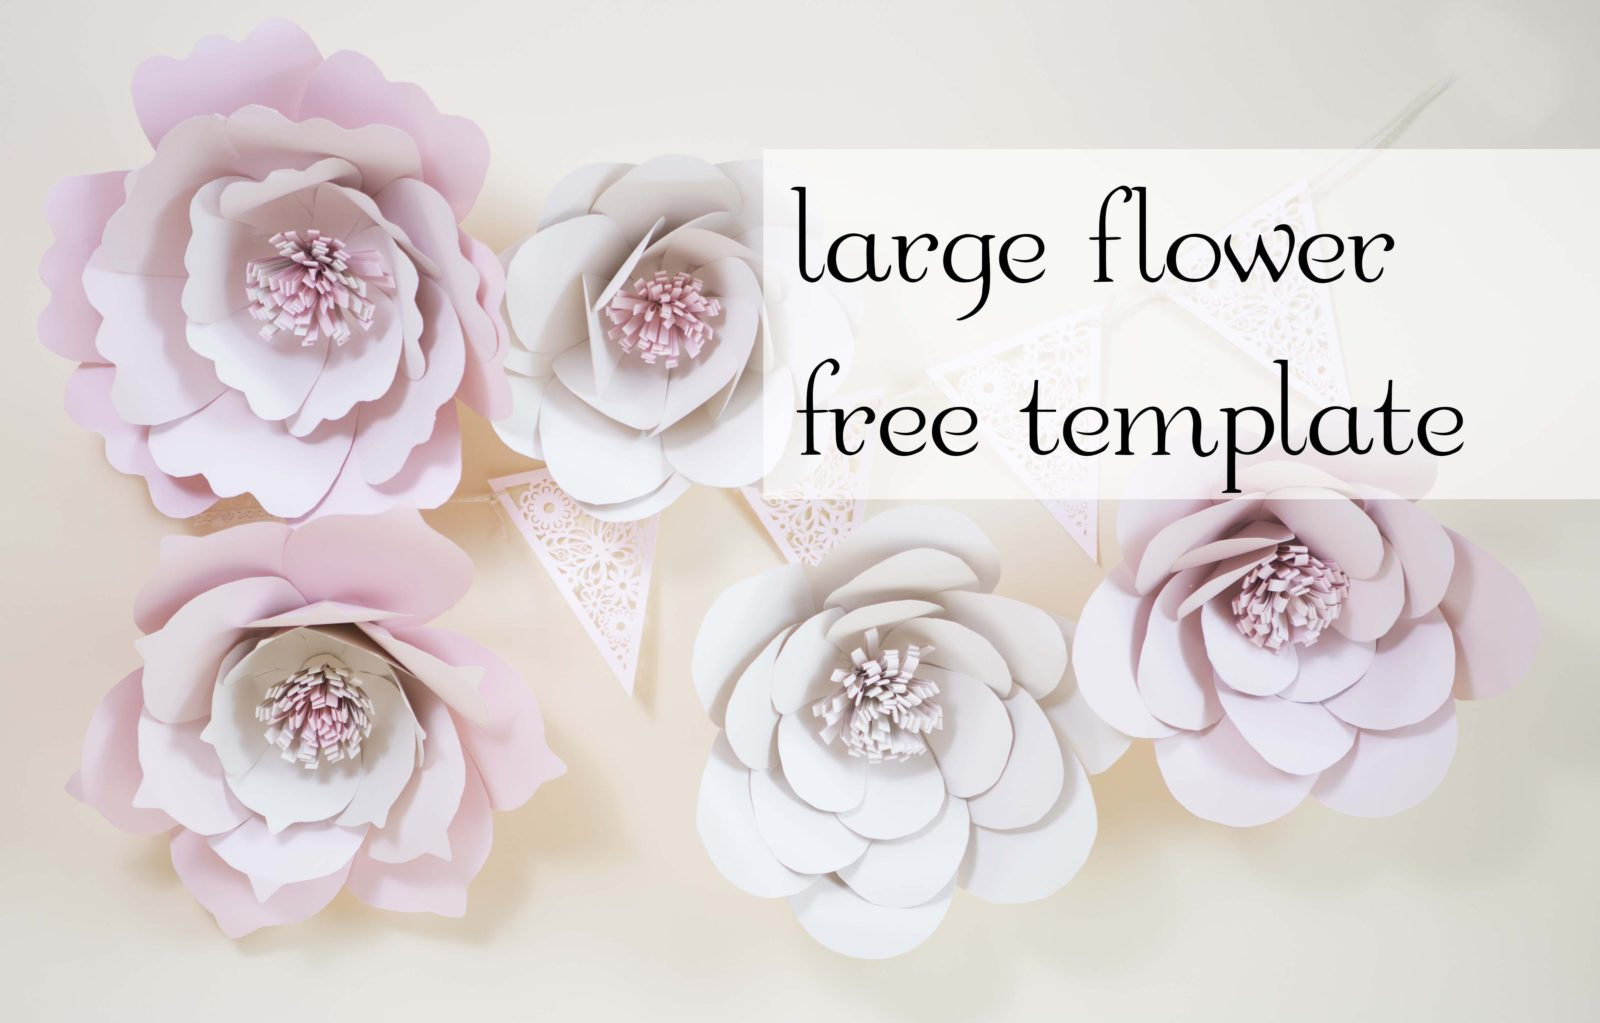 free flower stencils to print and cut out thoughtco